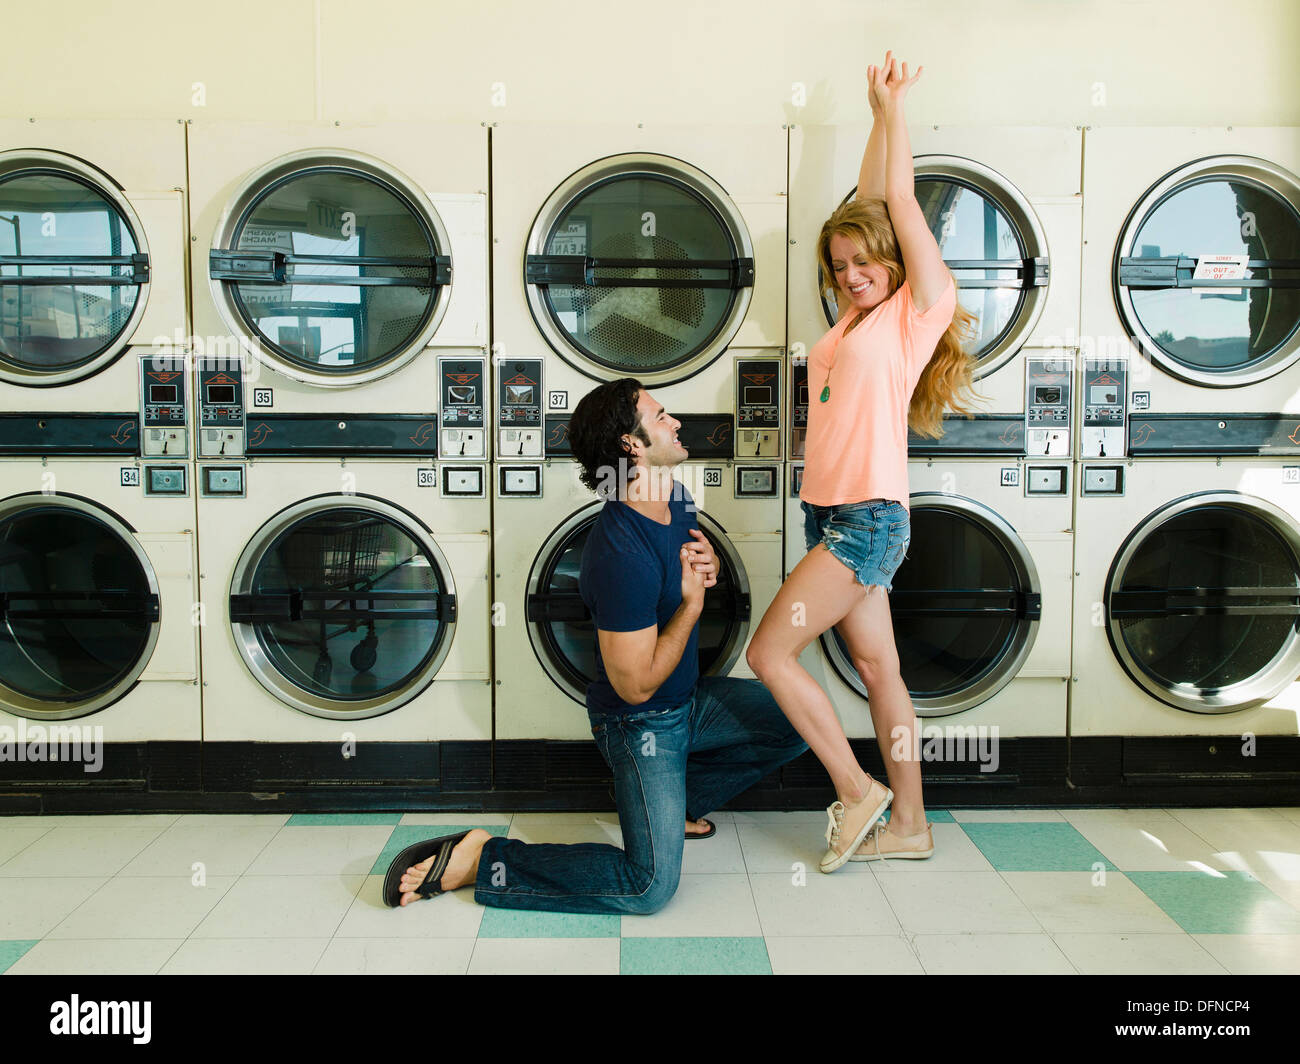 A smart young man kneels down before a beautiful woman in San Diego coin laundromat. - Stock Image